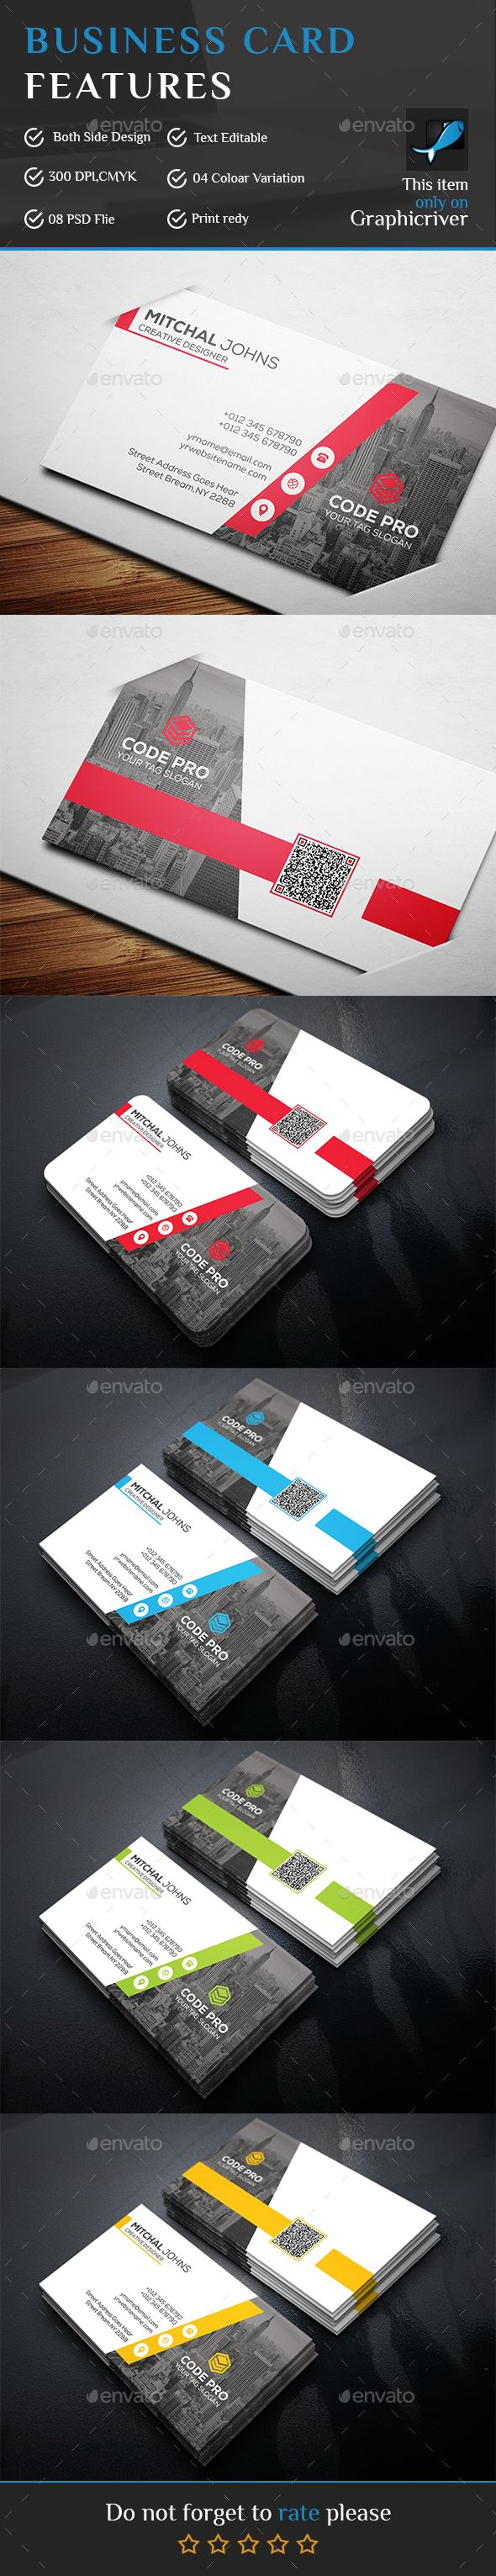 Corporate Business Card Template PSD More